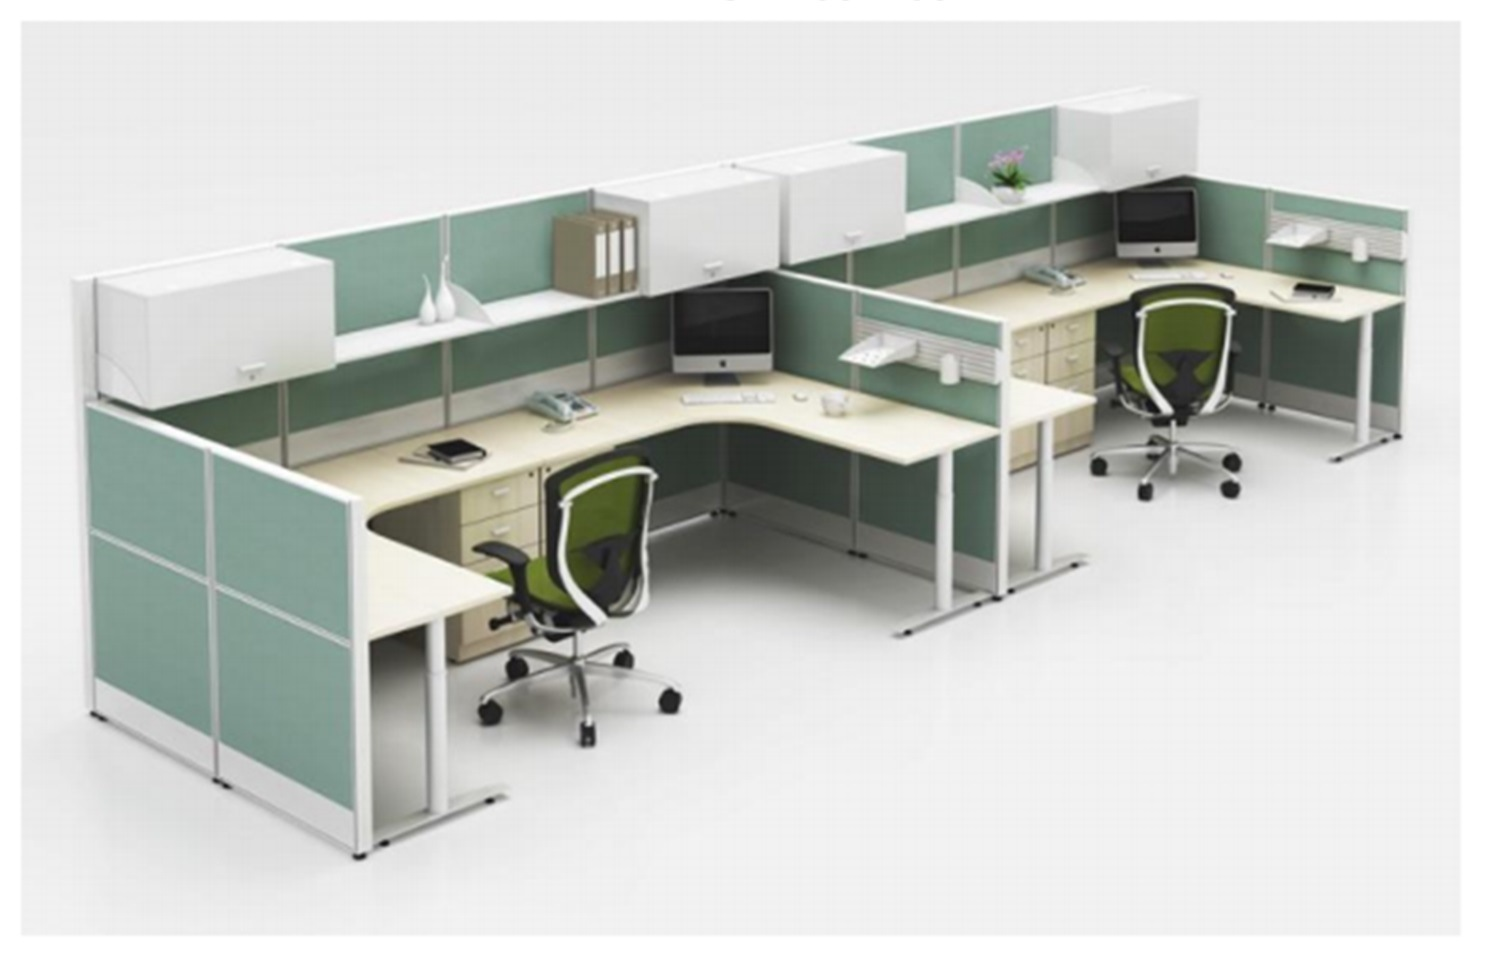 ahrend office b furniture allard workstation white product desk